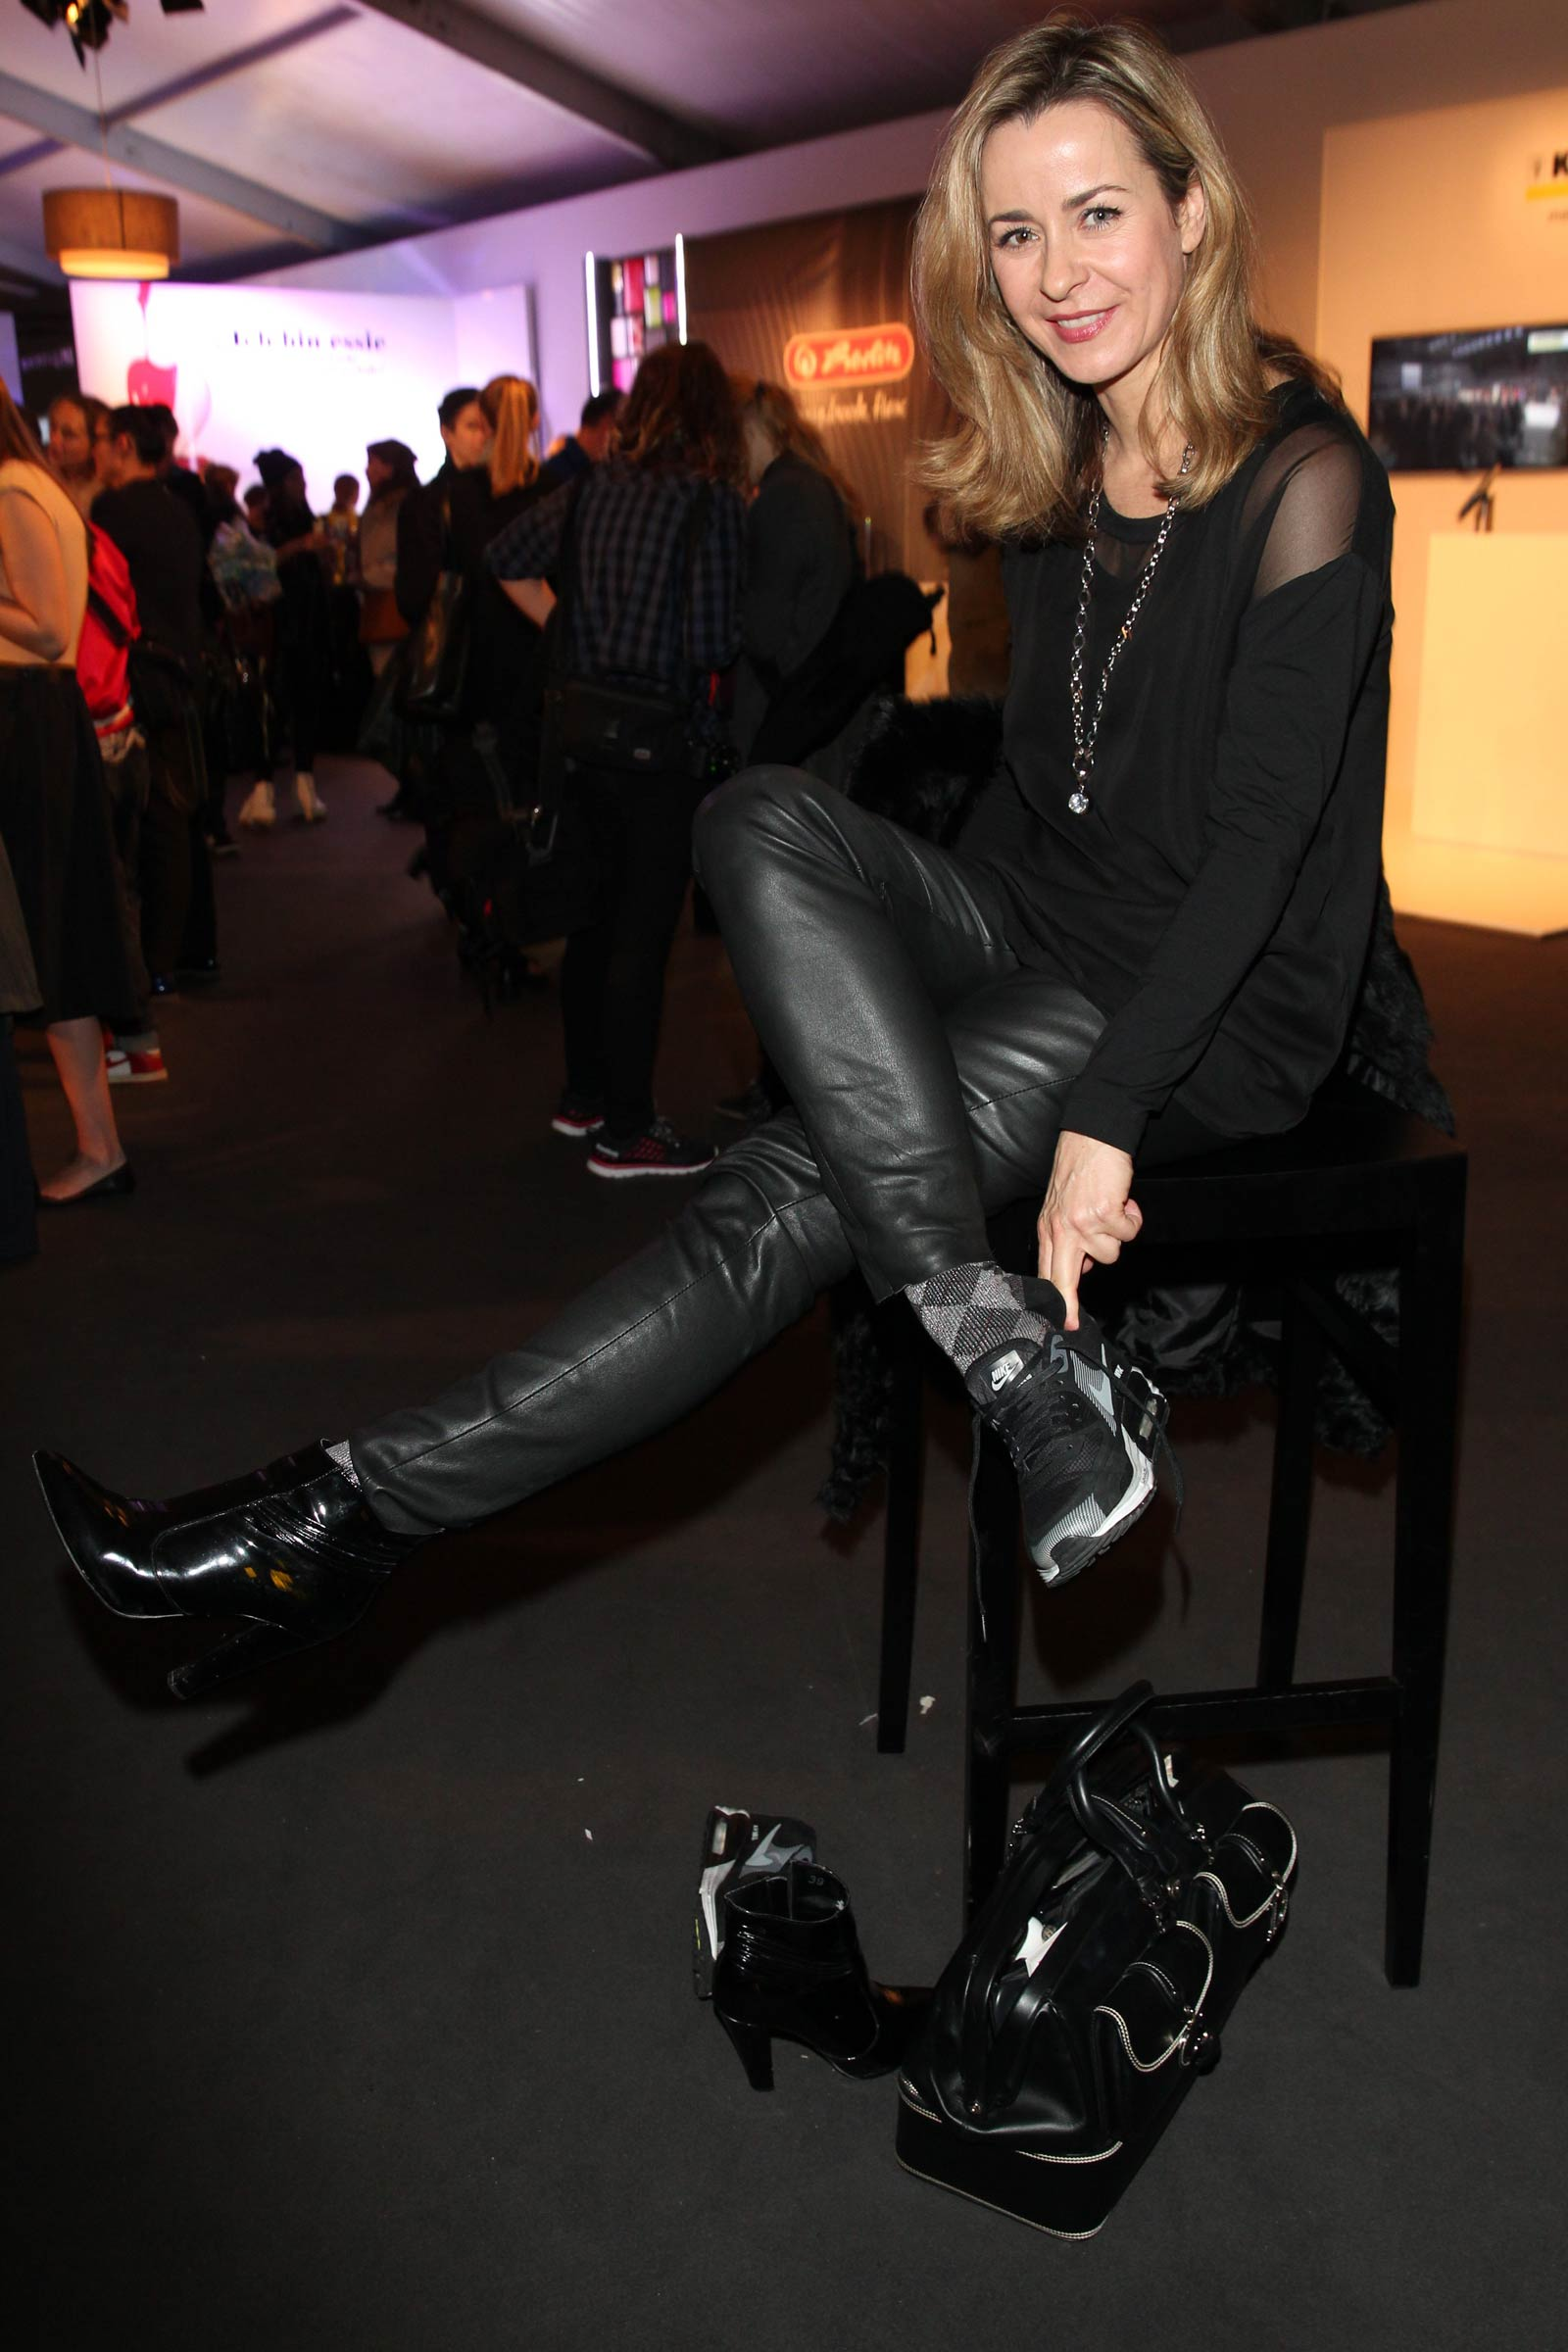 Bettina Cramer attends Mercedes-Benz Fashion Week